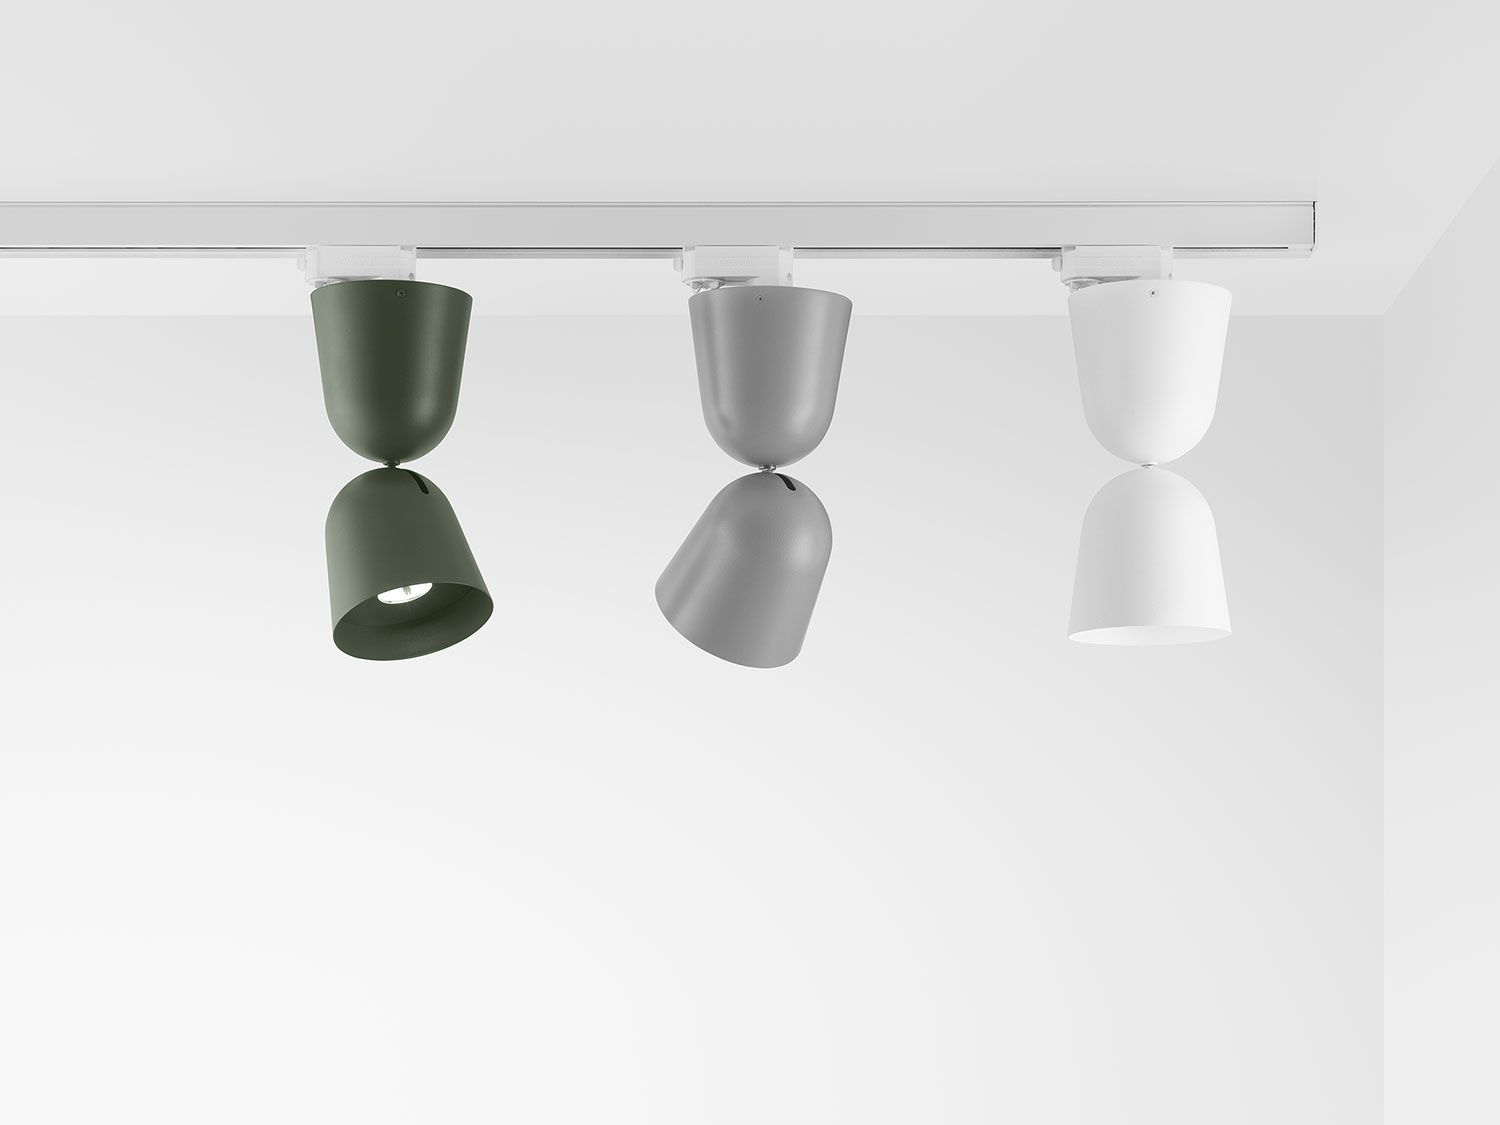 Zero lighting convex new by jens fager ceiling fixtures